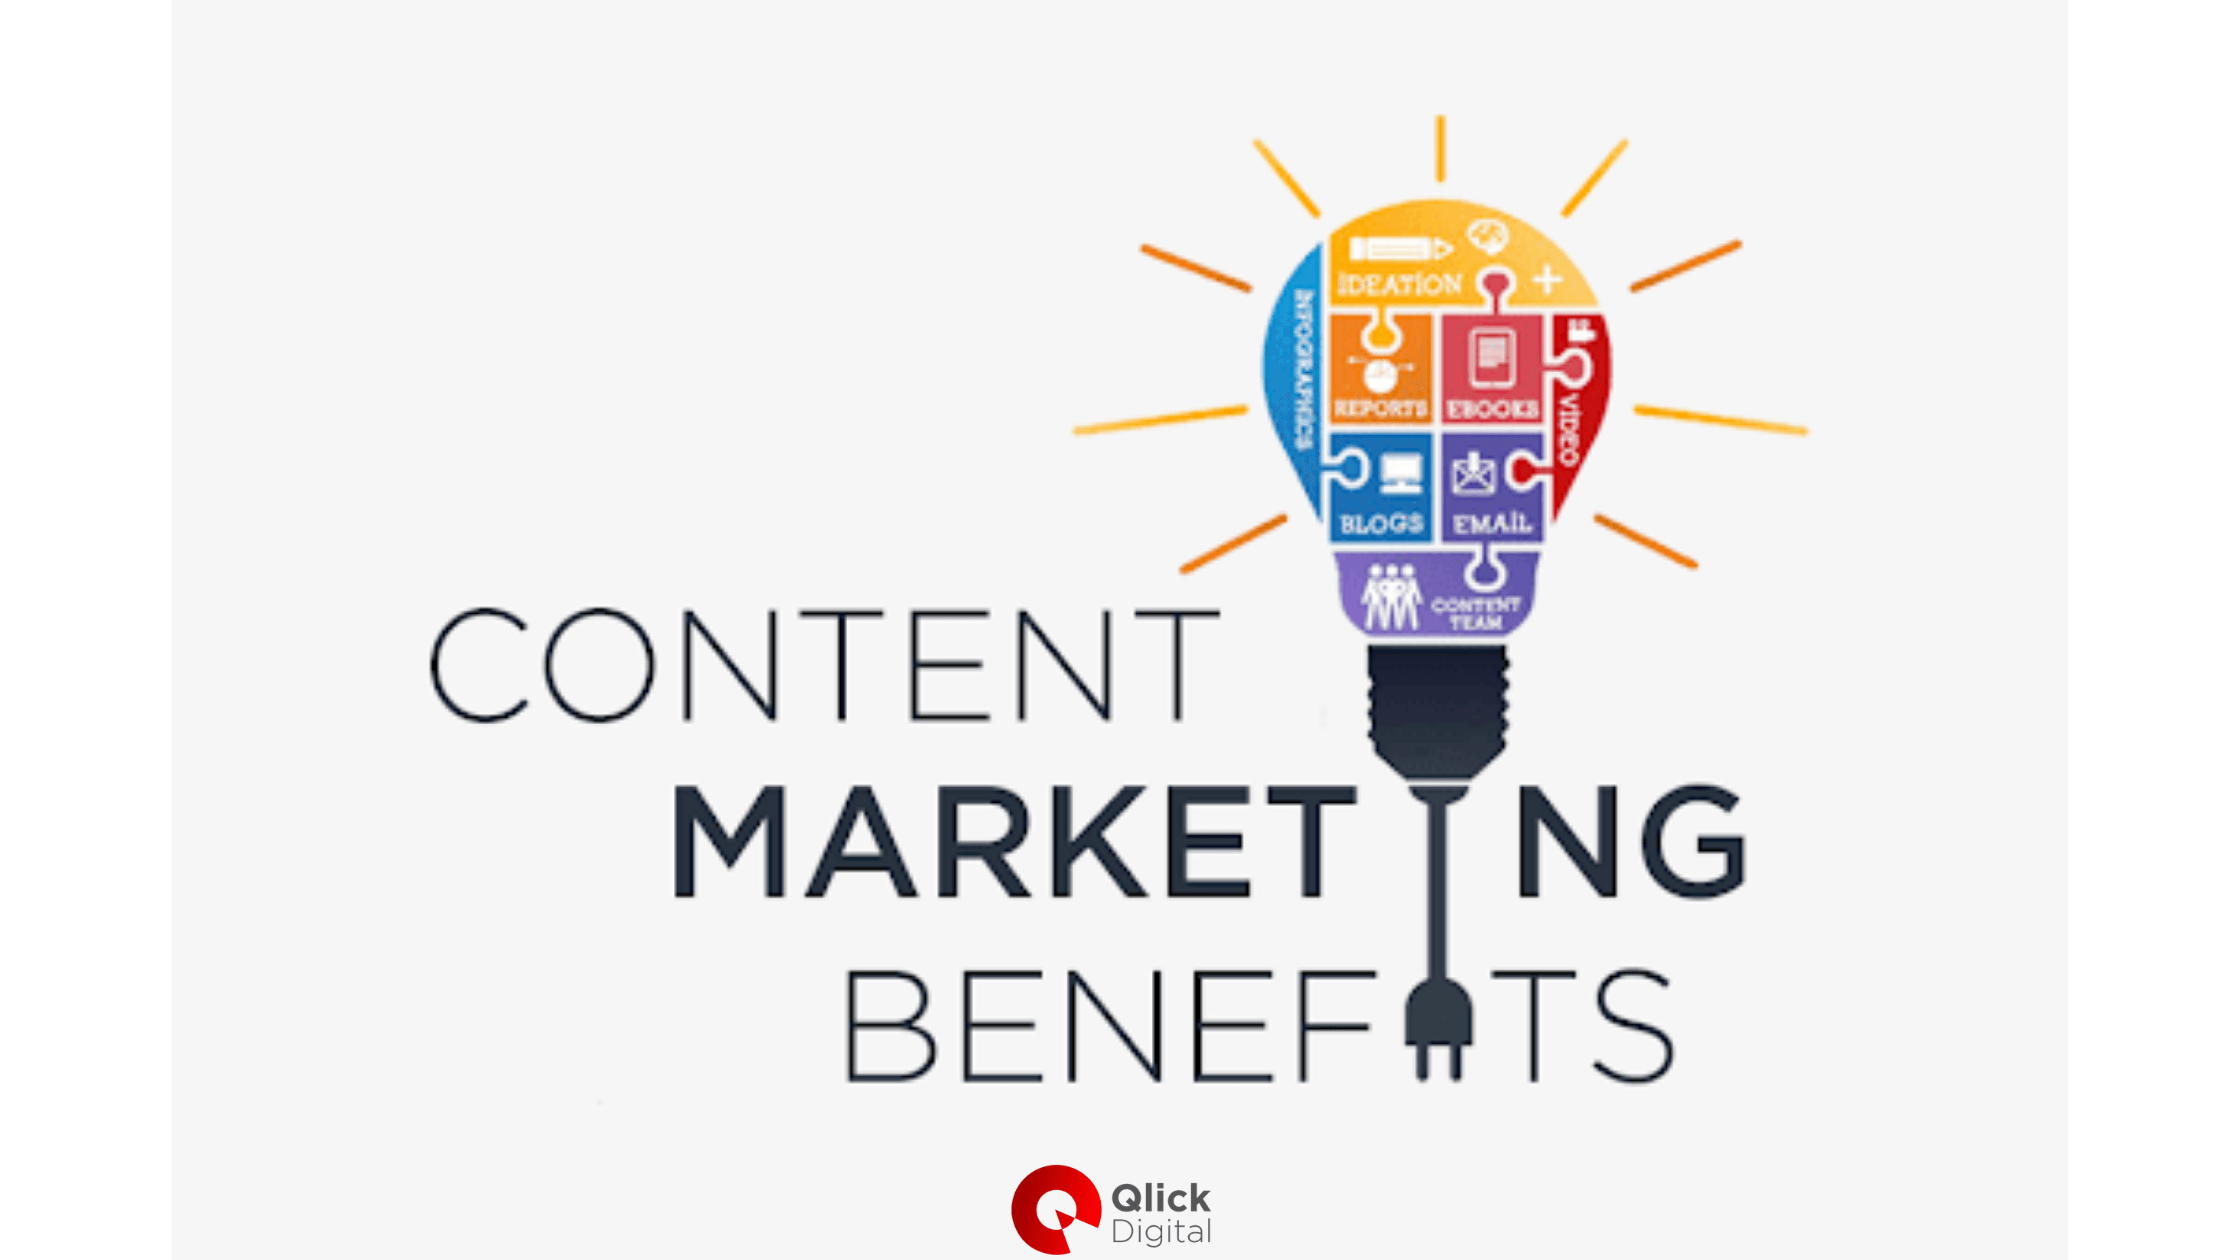 Content Marketing For Businesses: Why Your Brands Needs It